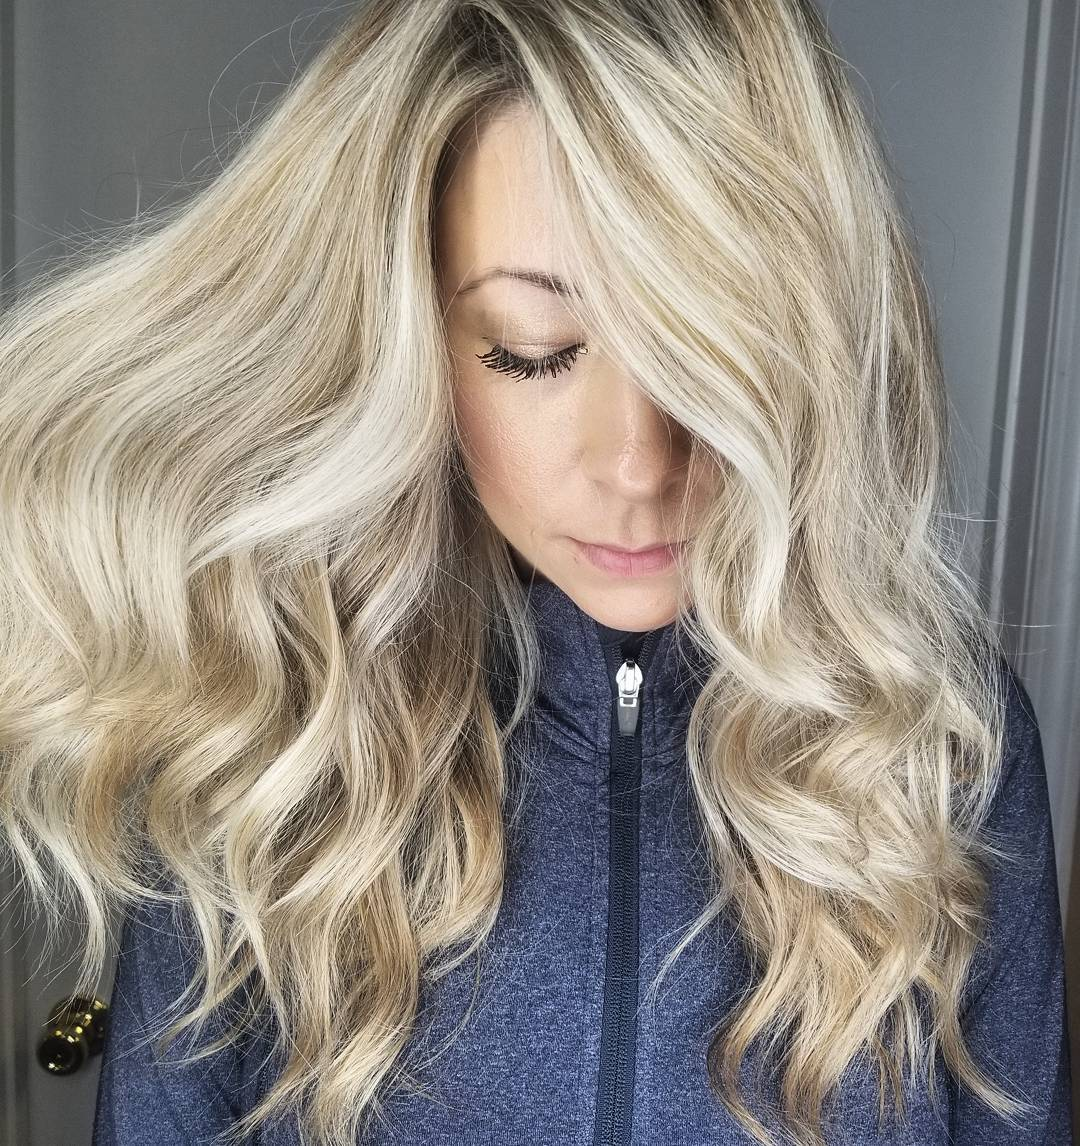 Woman with light honey blonde curly hair with a side parting